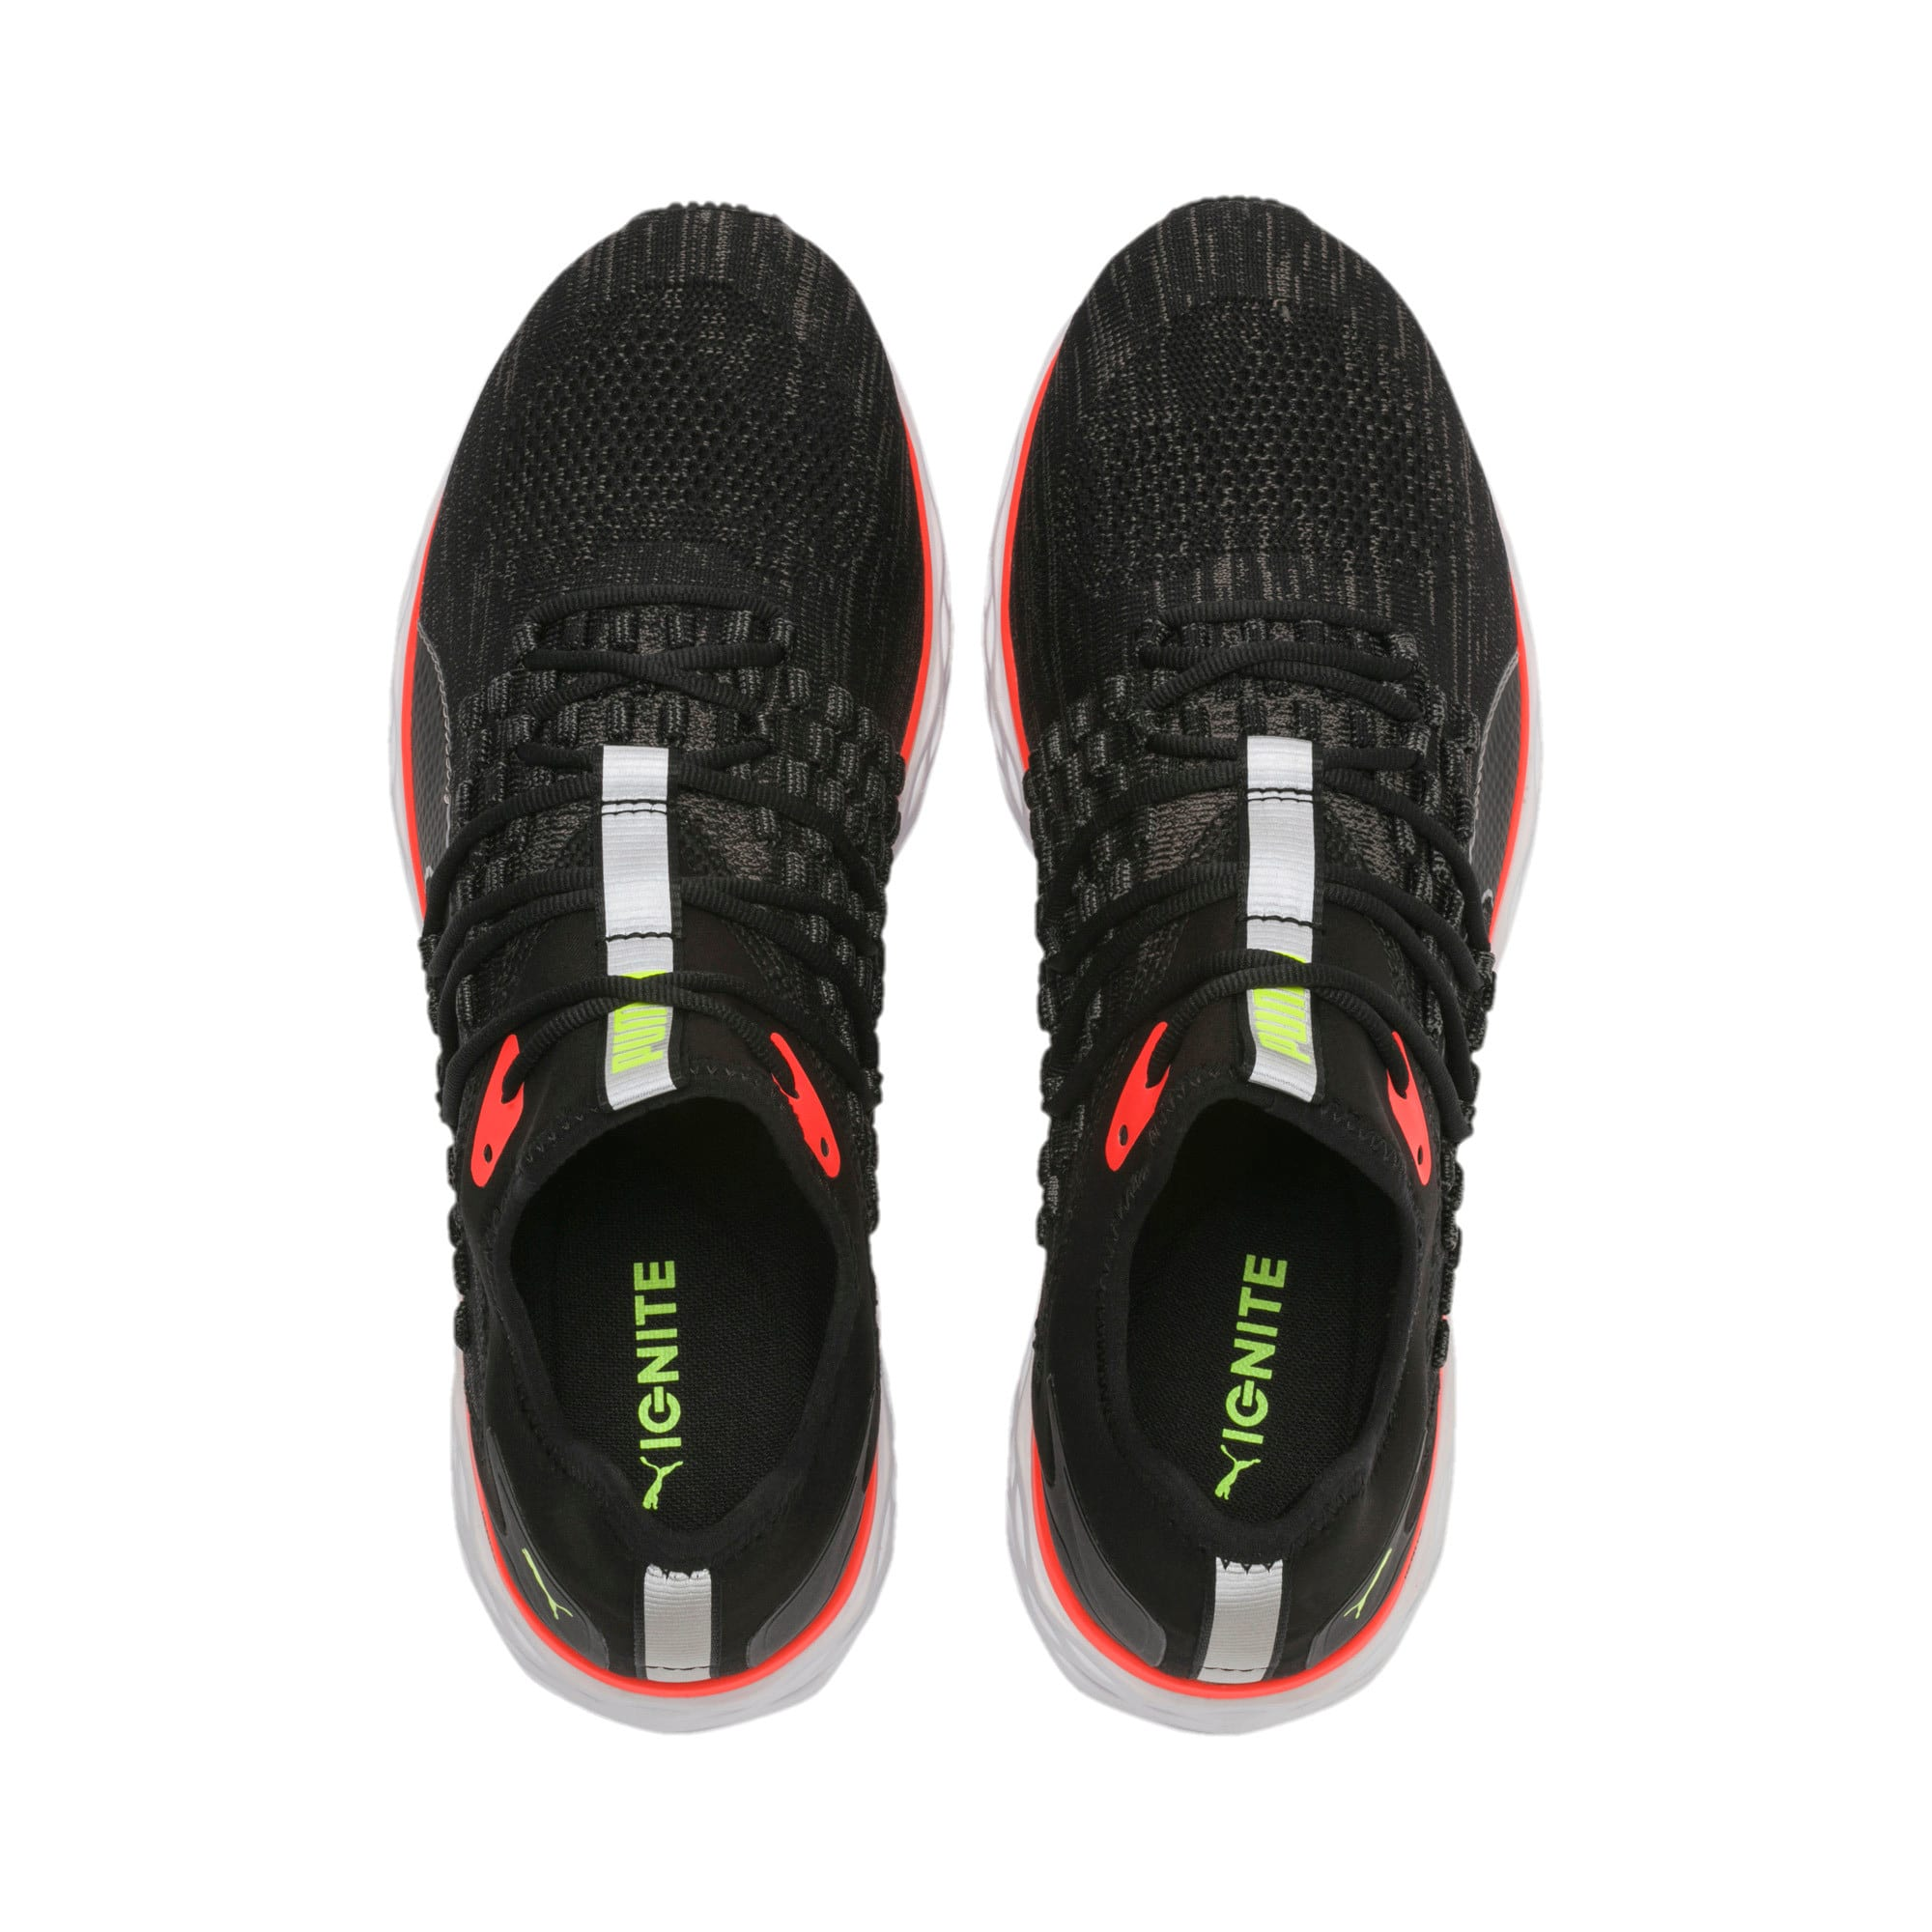 Thumbnail 8 of SPEED FUSEFIT Men's Running Shoes, Puma Black-Nrgy Red, medium-IND